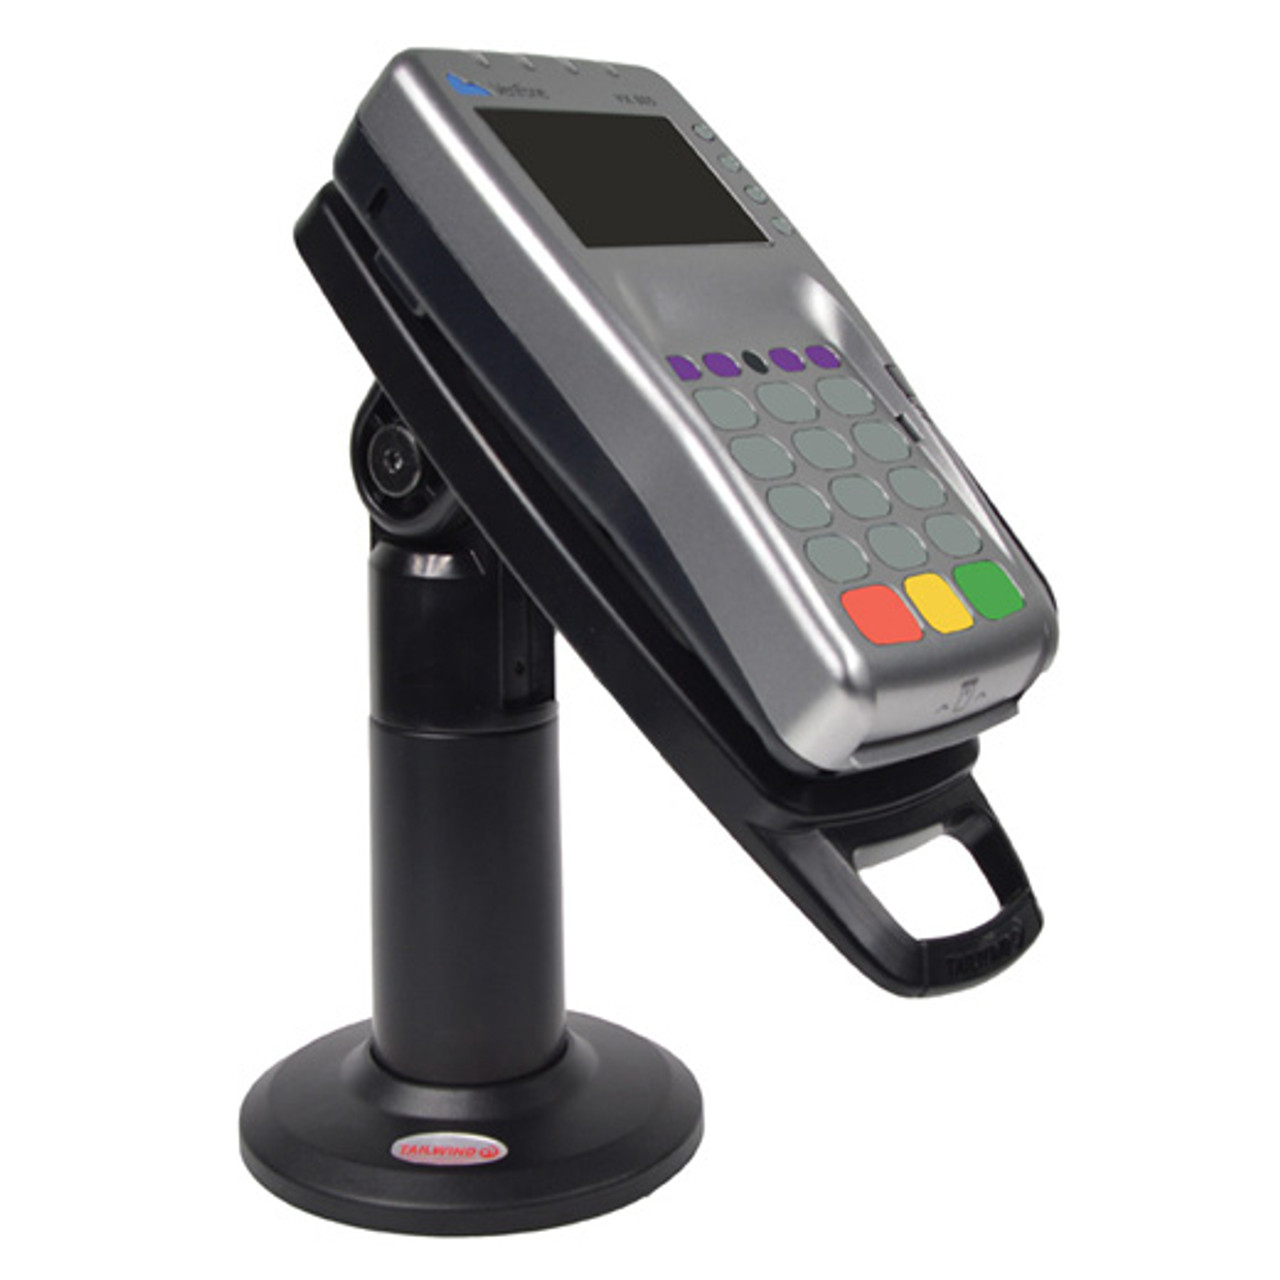 Verifone VX805 or VX820 FlexiPole FirstBase Complete Stand